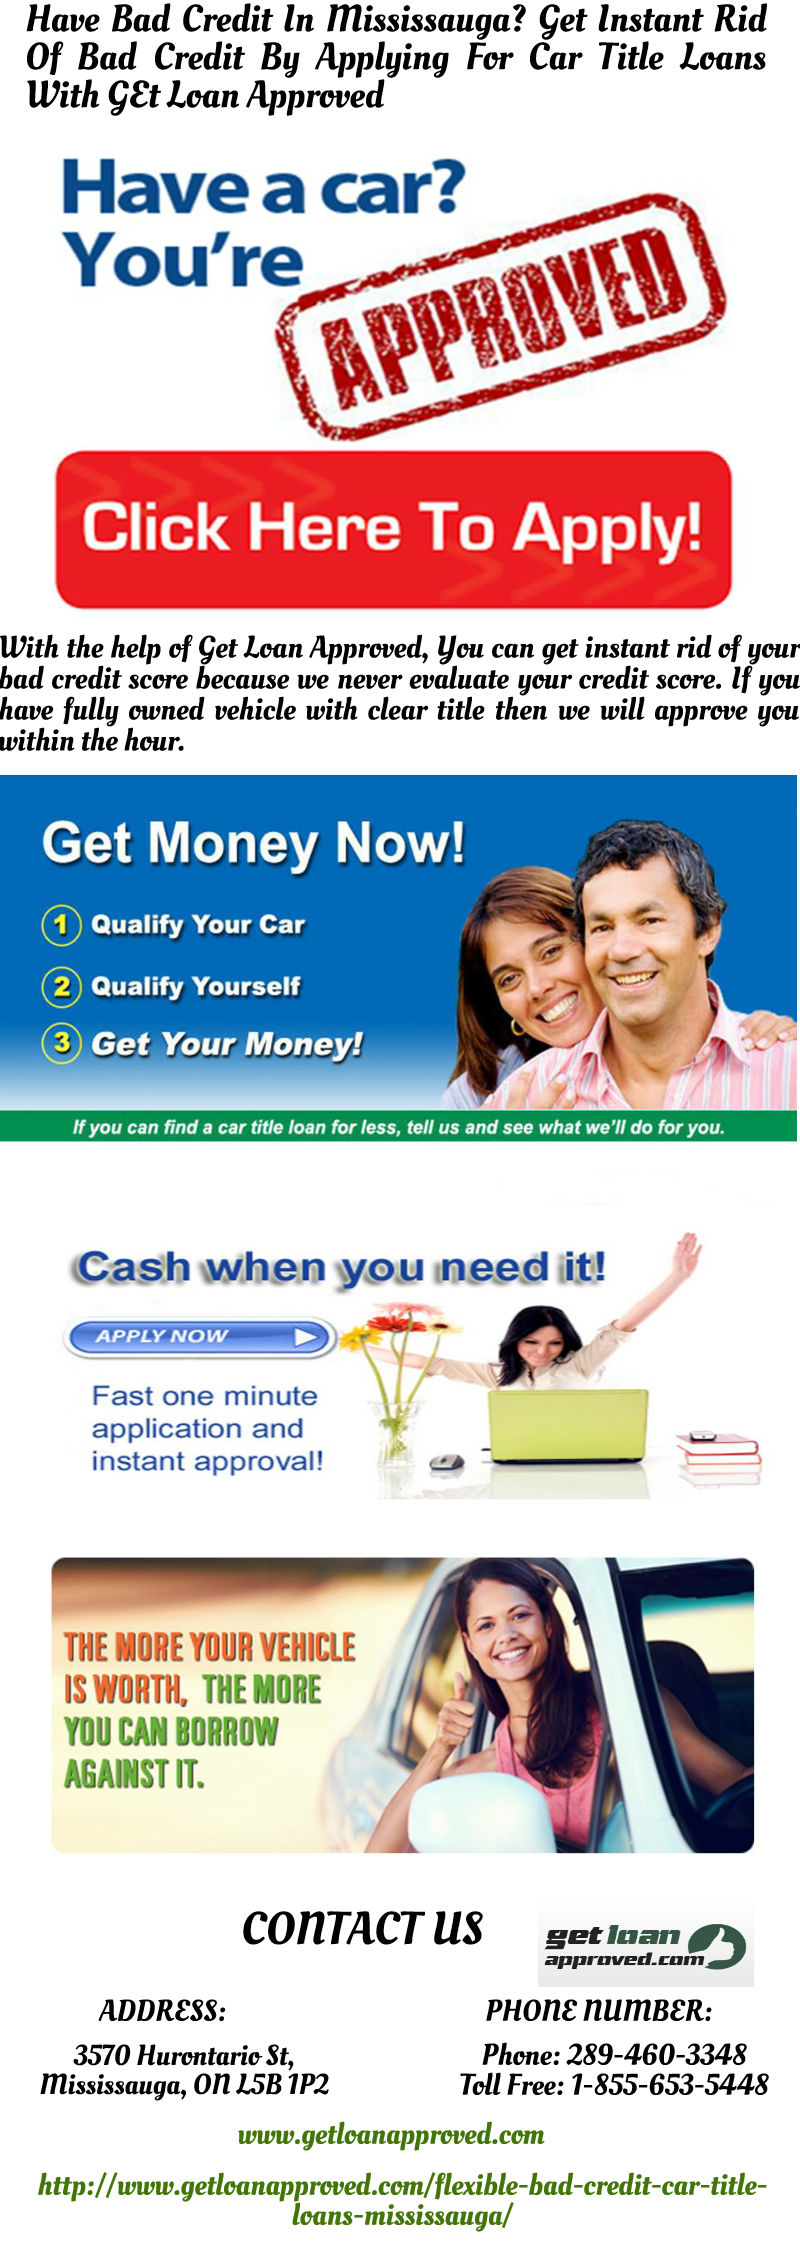 With Get Loan Approved You Can Get The Money You Need Today By Applying For A Bad Credit Car Title Loan Mi Bad Credit Car Loan Bad Credit Loans For Bad